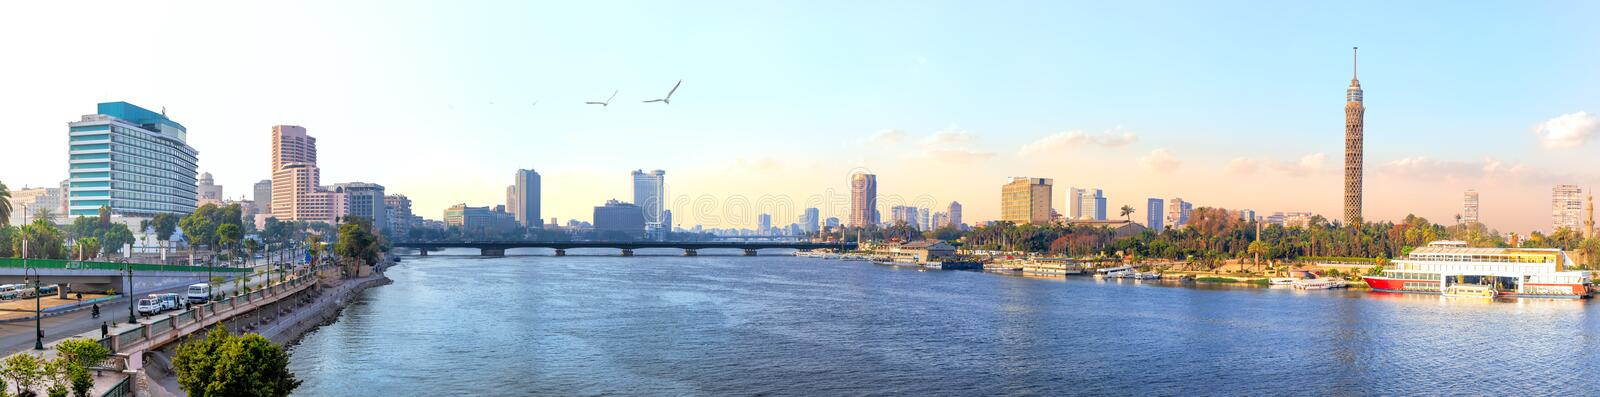 Panorama of Cairo, the Nile and Gezira island view, Egypt.  royalty free stock photography